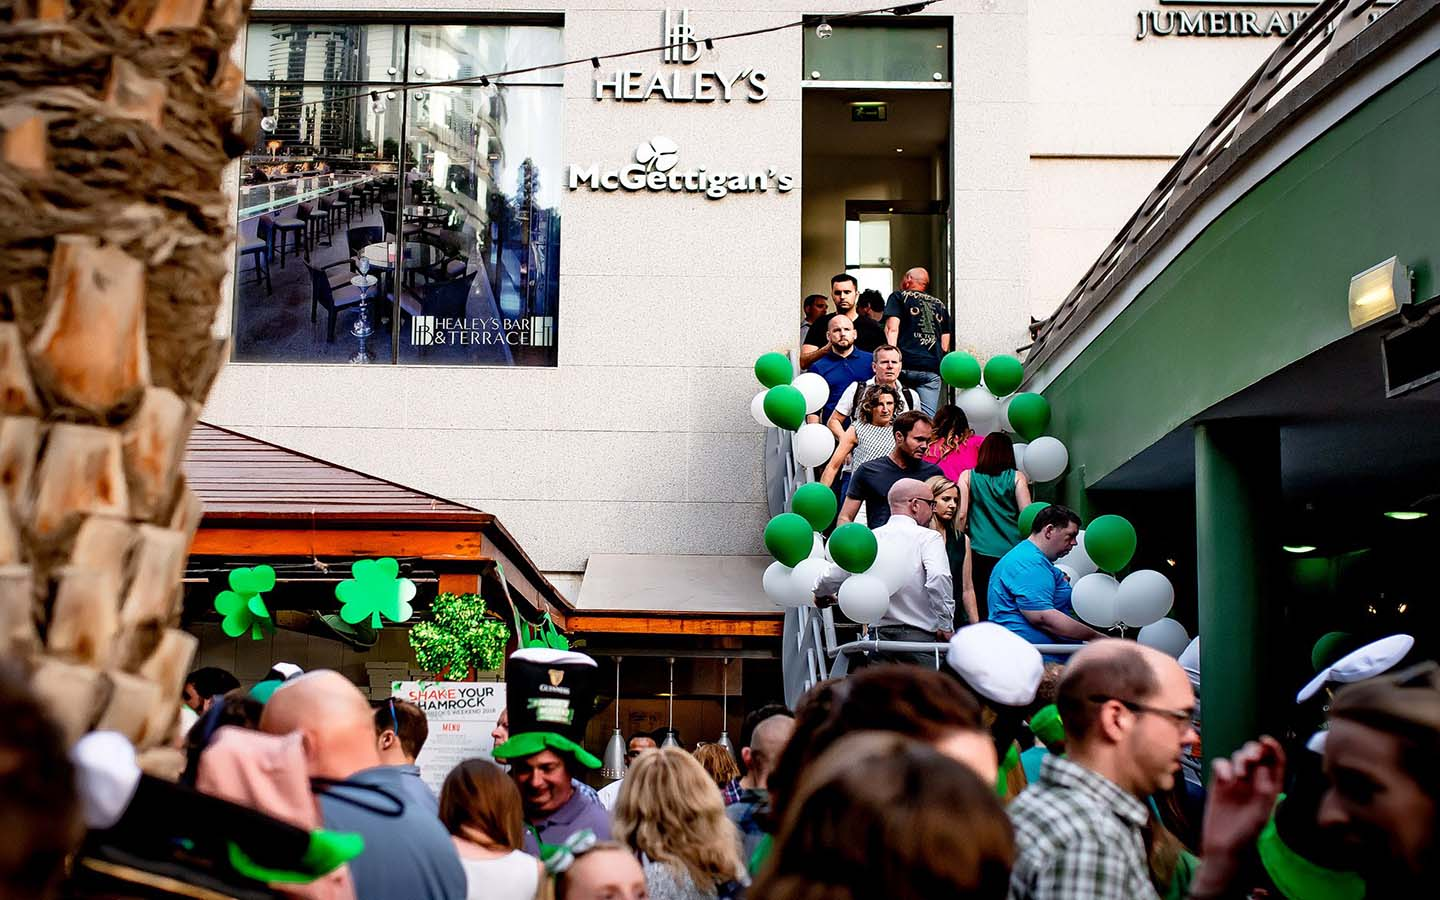 Entrance to McGettigan's JLT during St Patrick's Day in Dubai celebrations